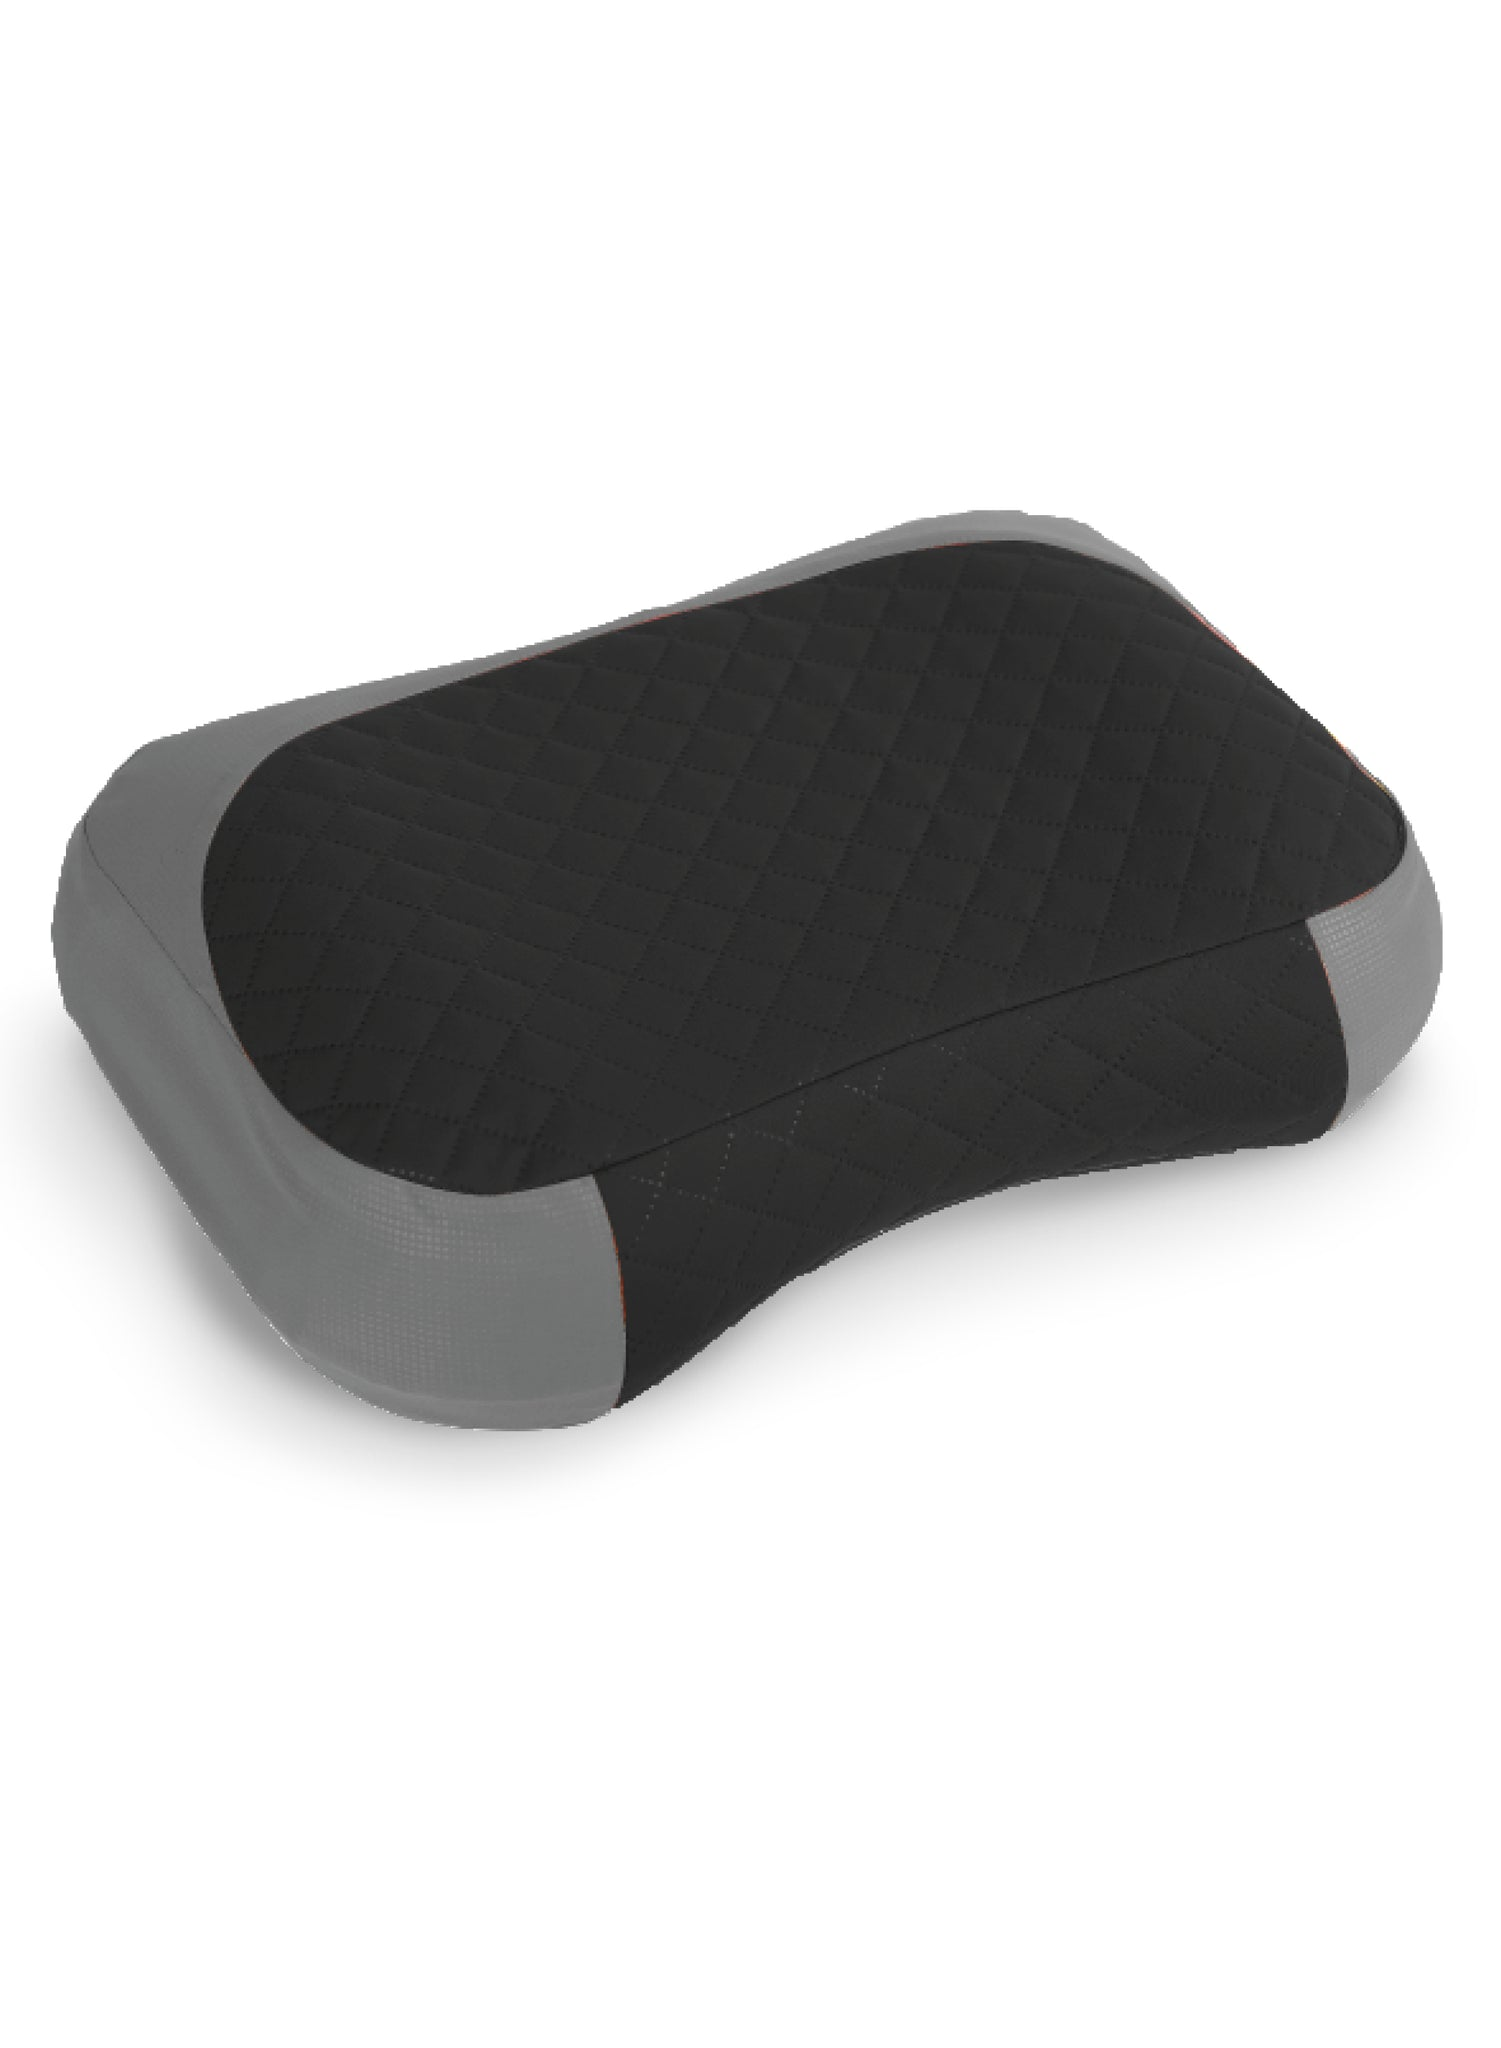 Air-Lite Pro Pillow